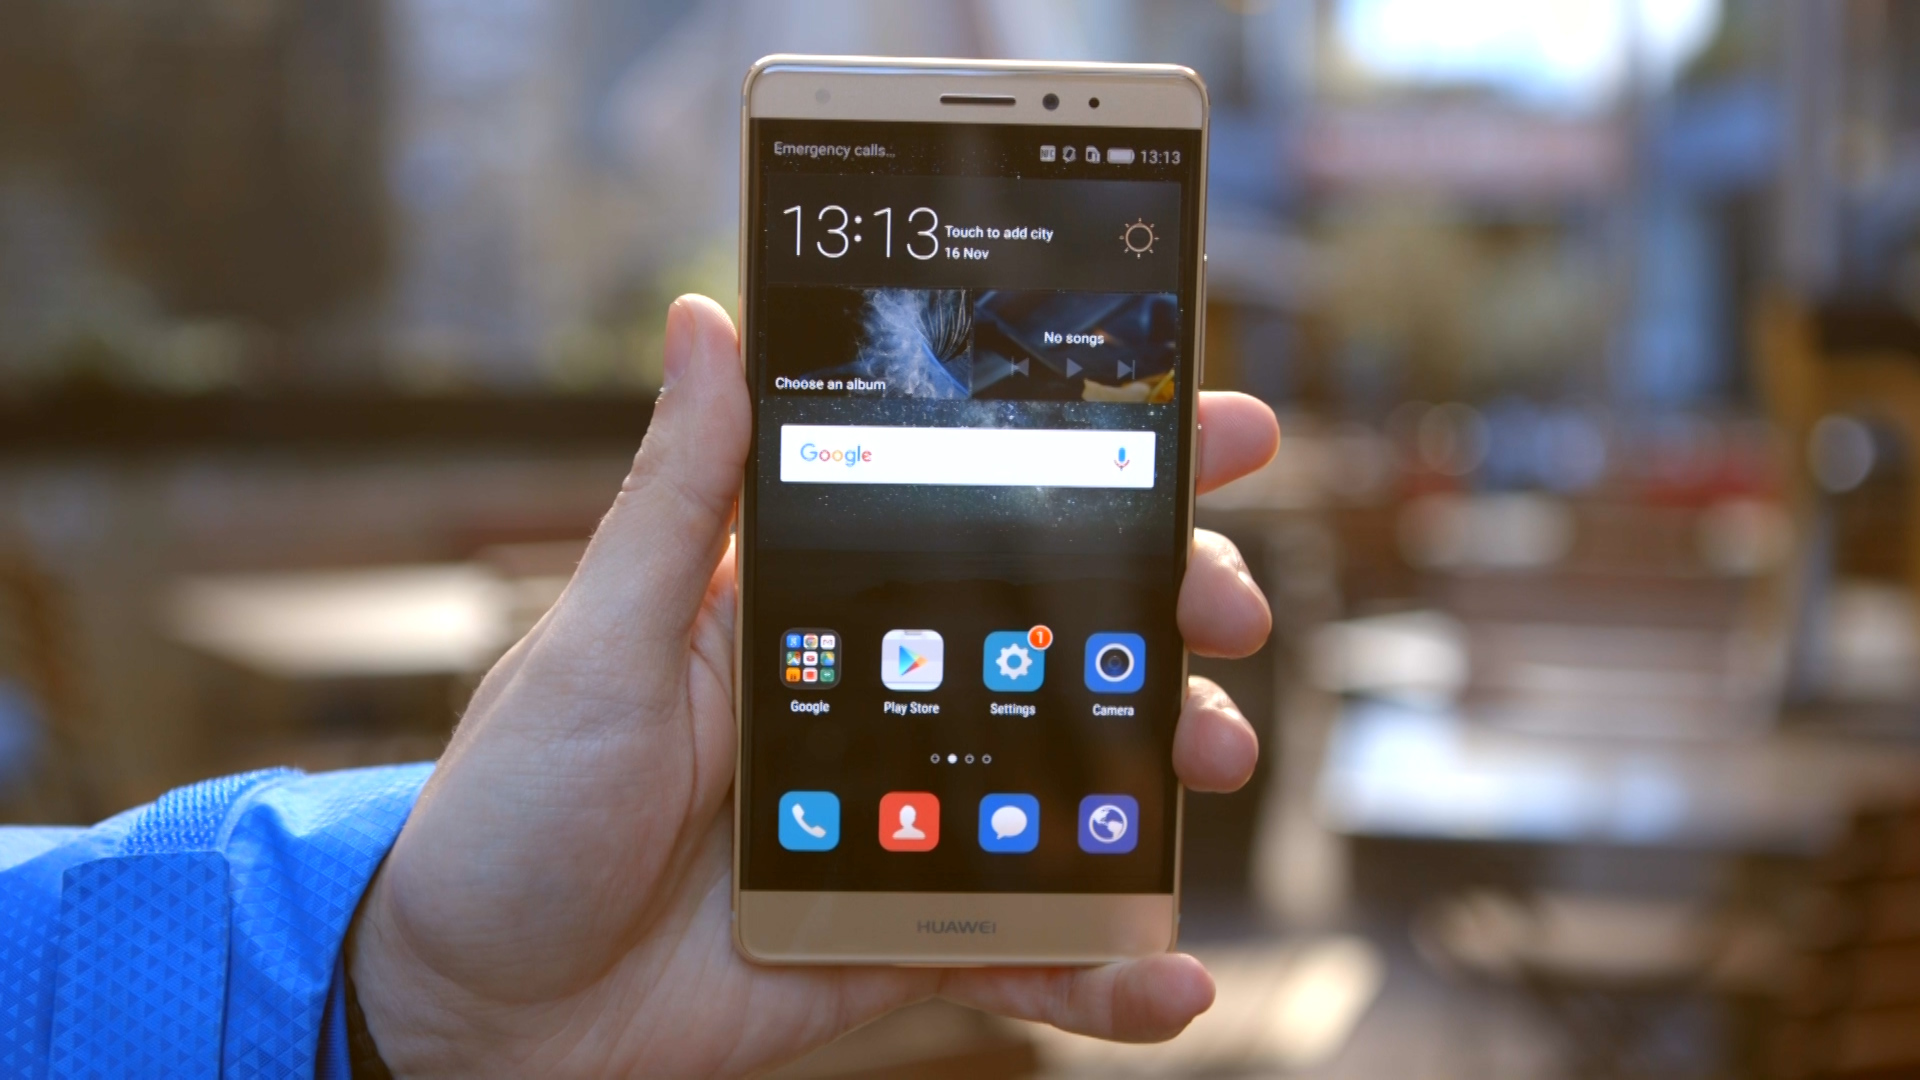 Video: See the slender metal body of the Huawei Mate S